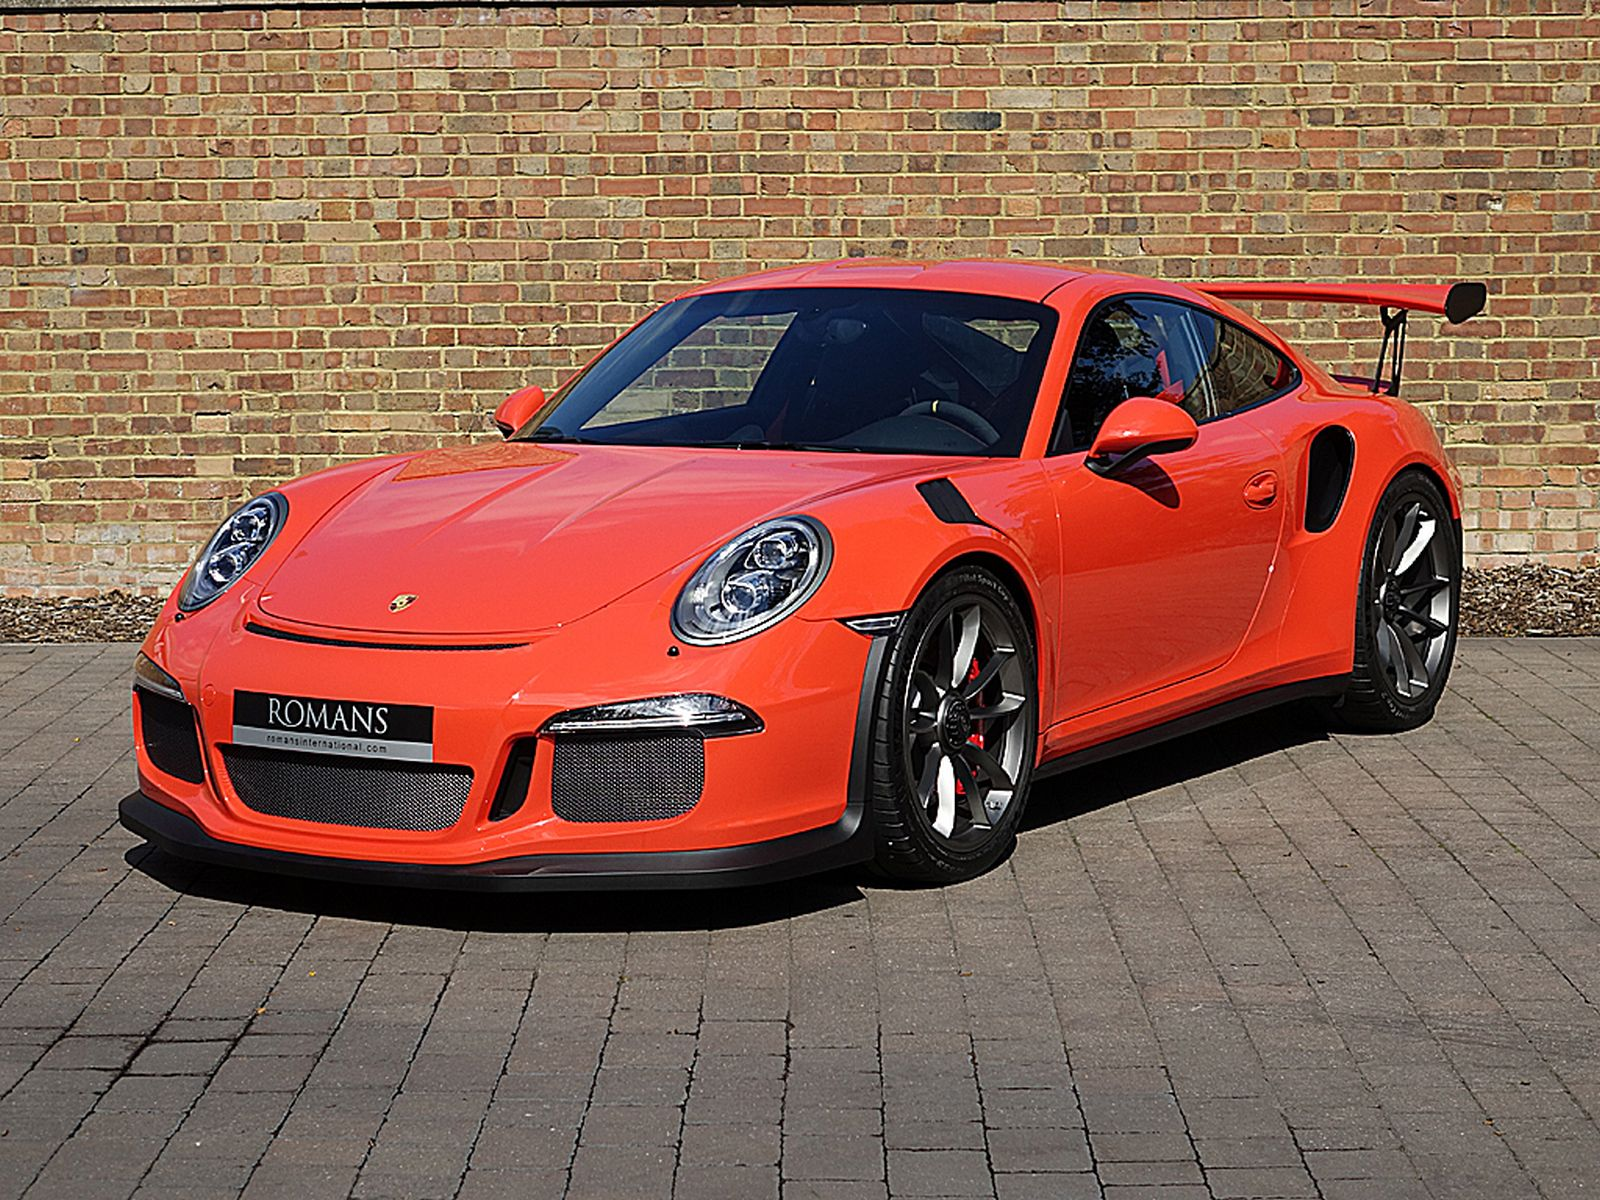 Used 2016 Porsche 911 GT3 RS For Sale in the UK - GTspirit